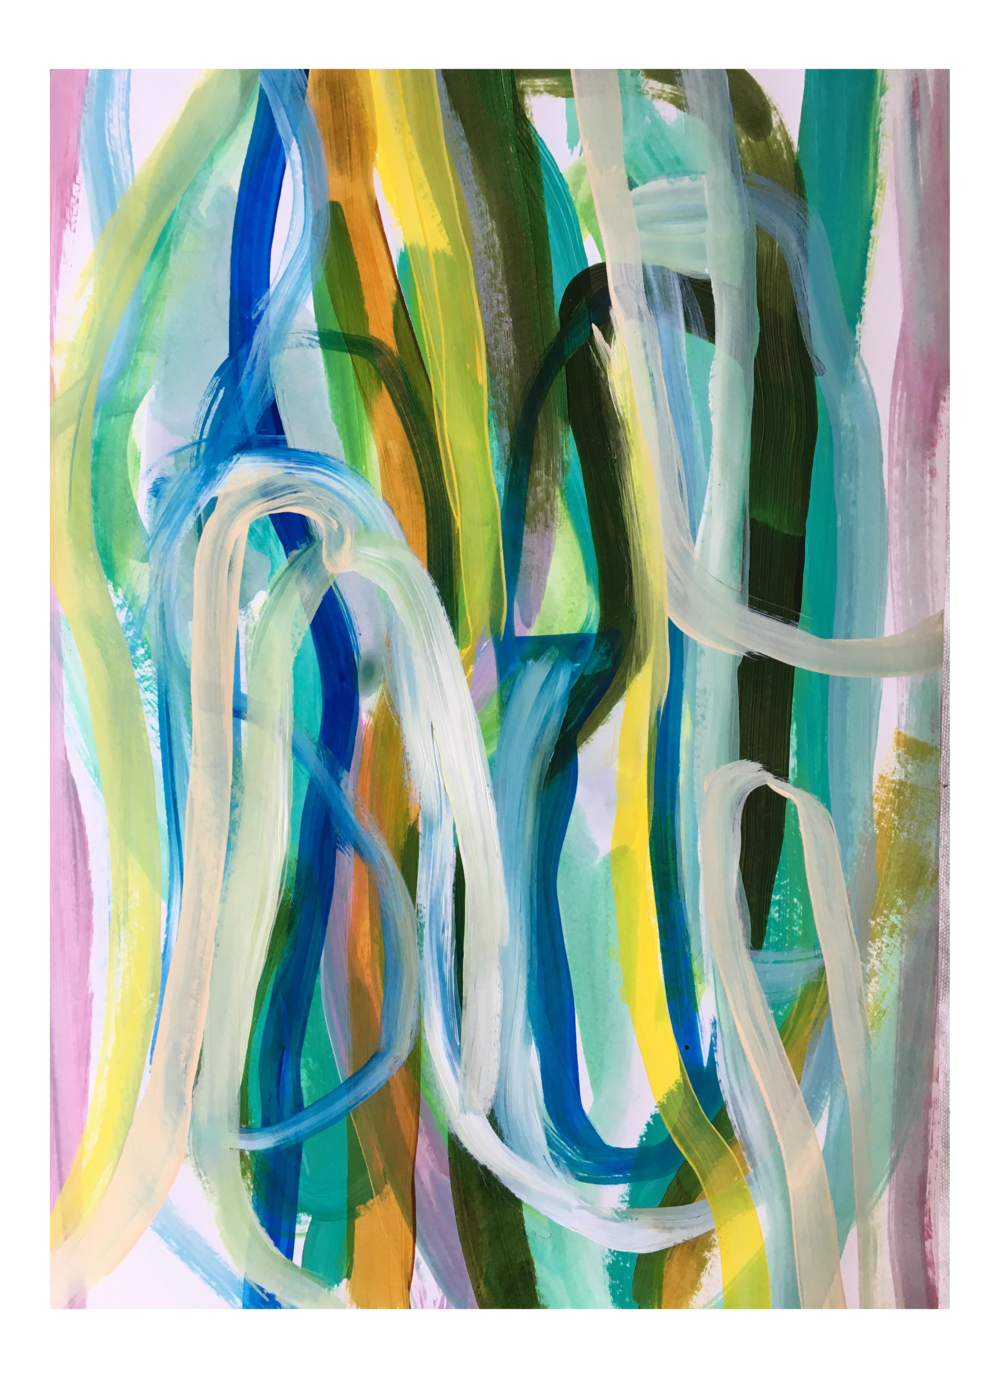 original-painting-no-188-by-jessalin-beutler-1395.png